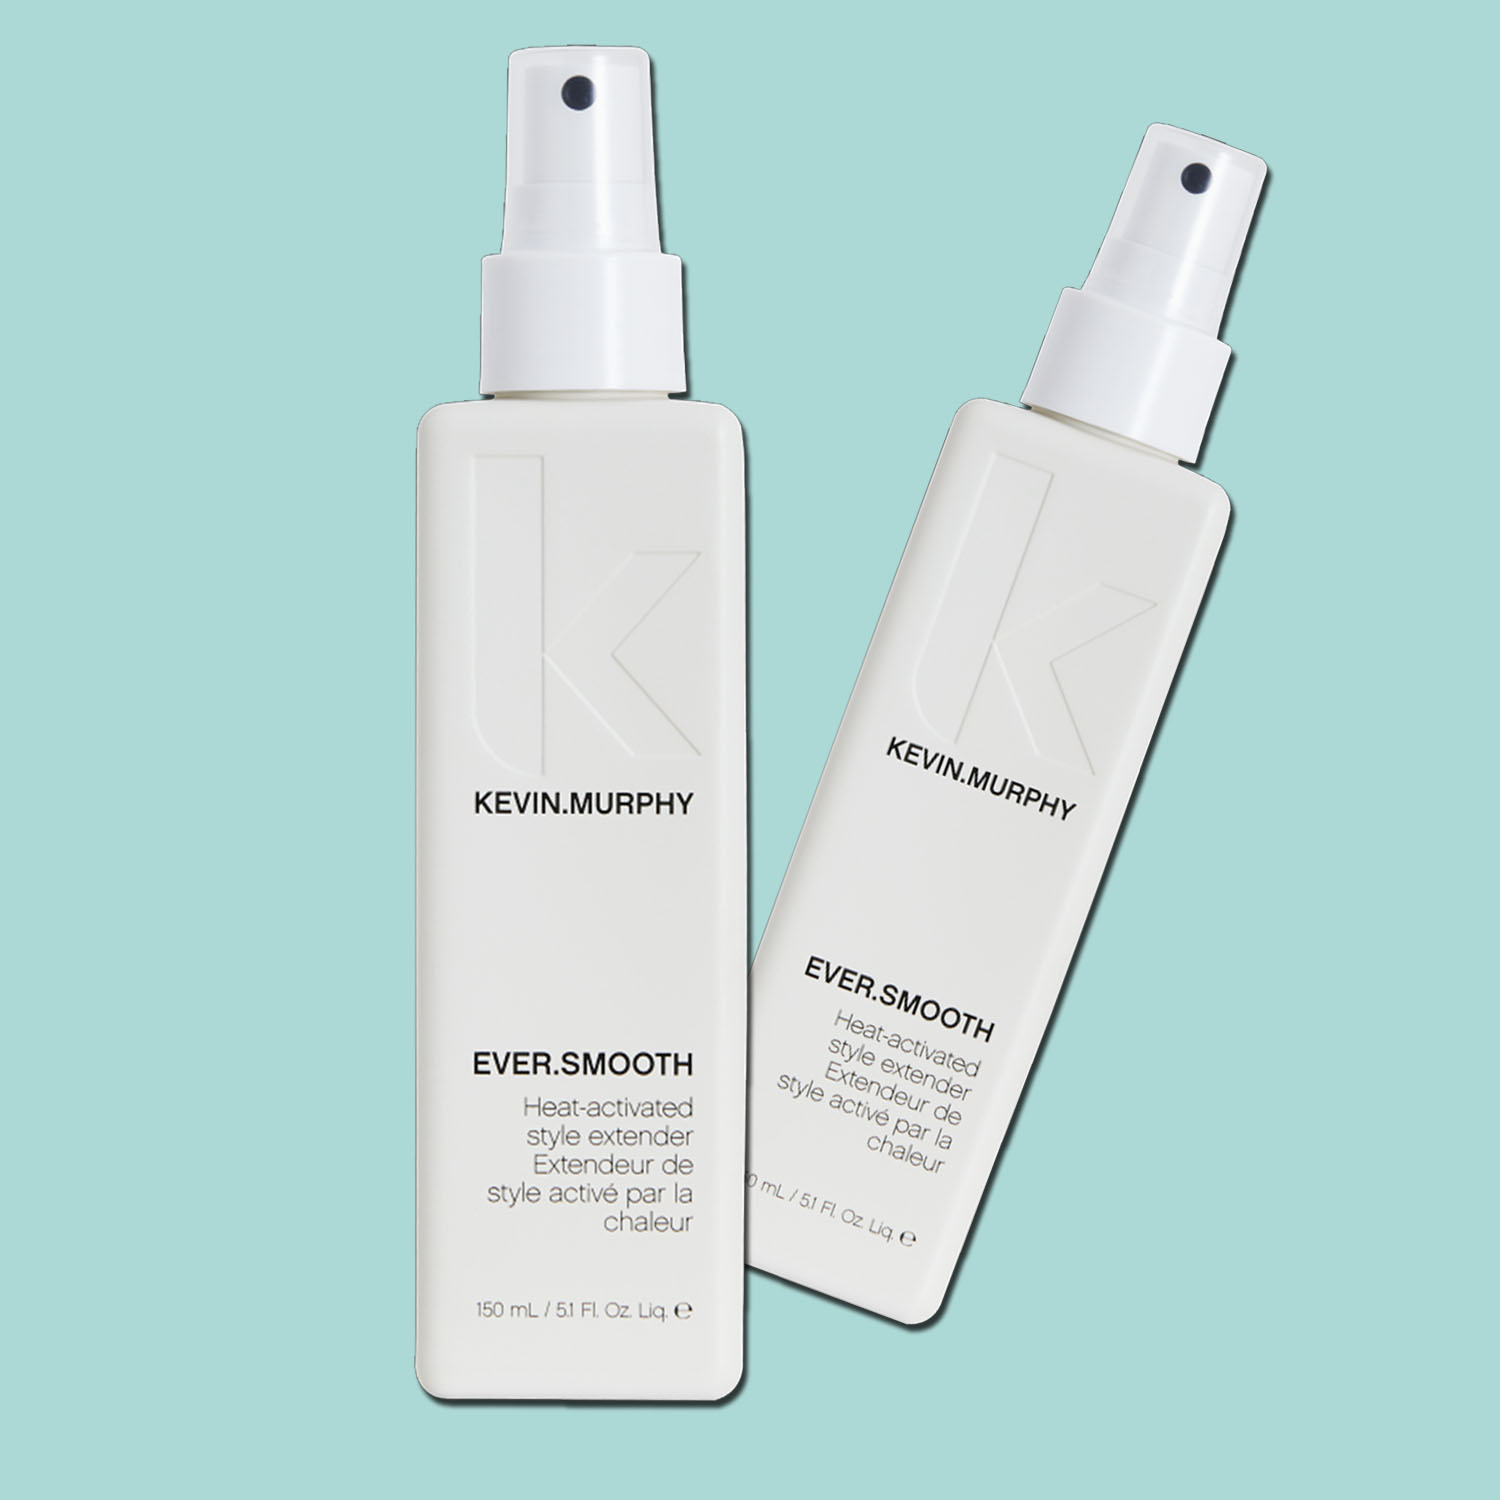 Ever.Smooth from Kevin Murphy